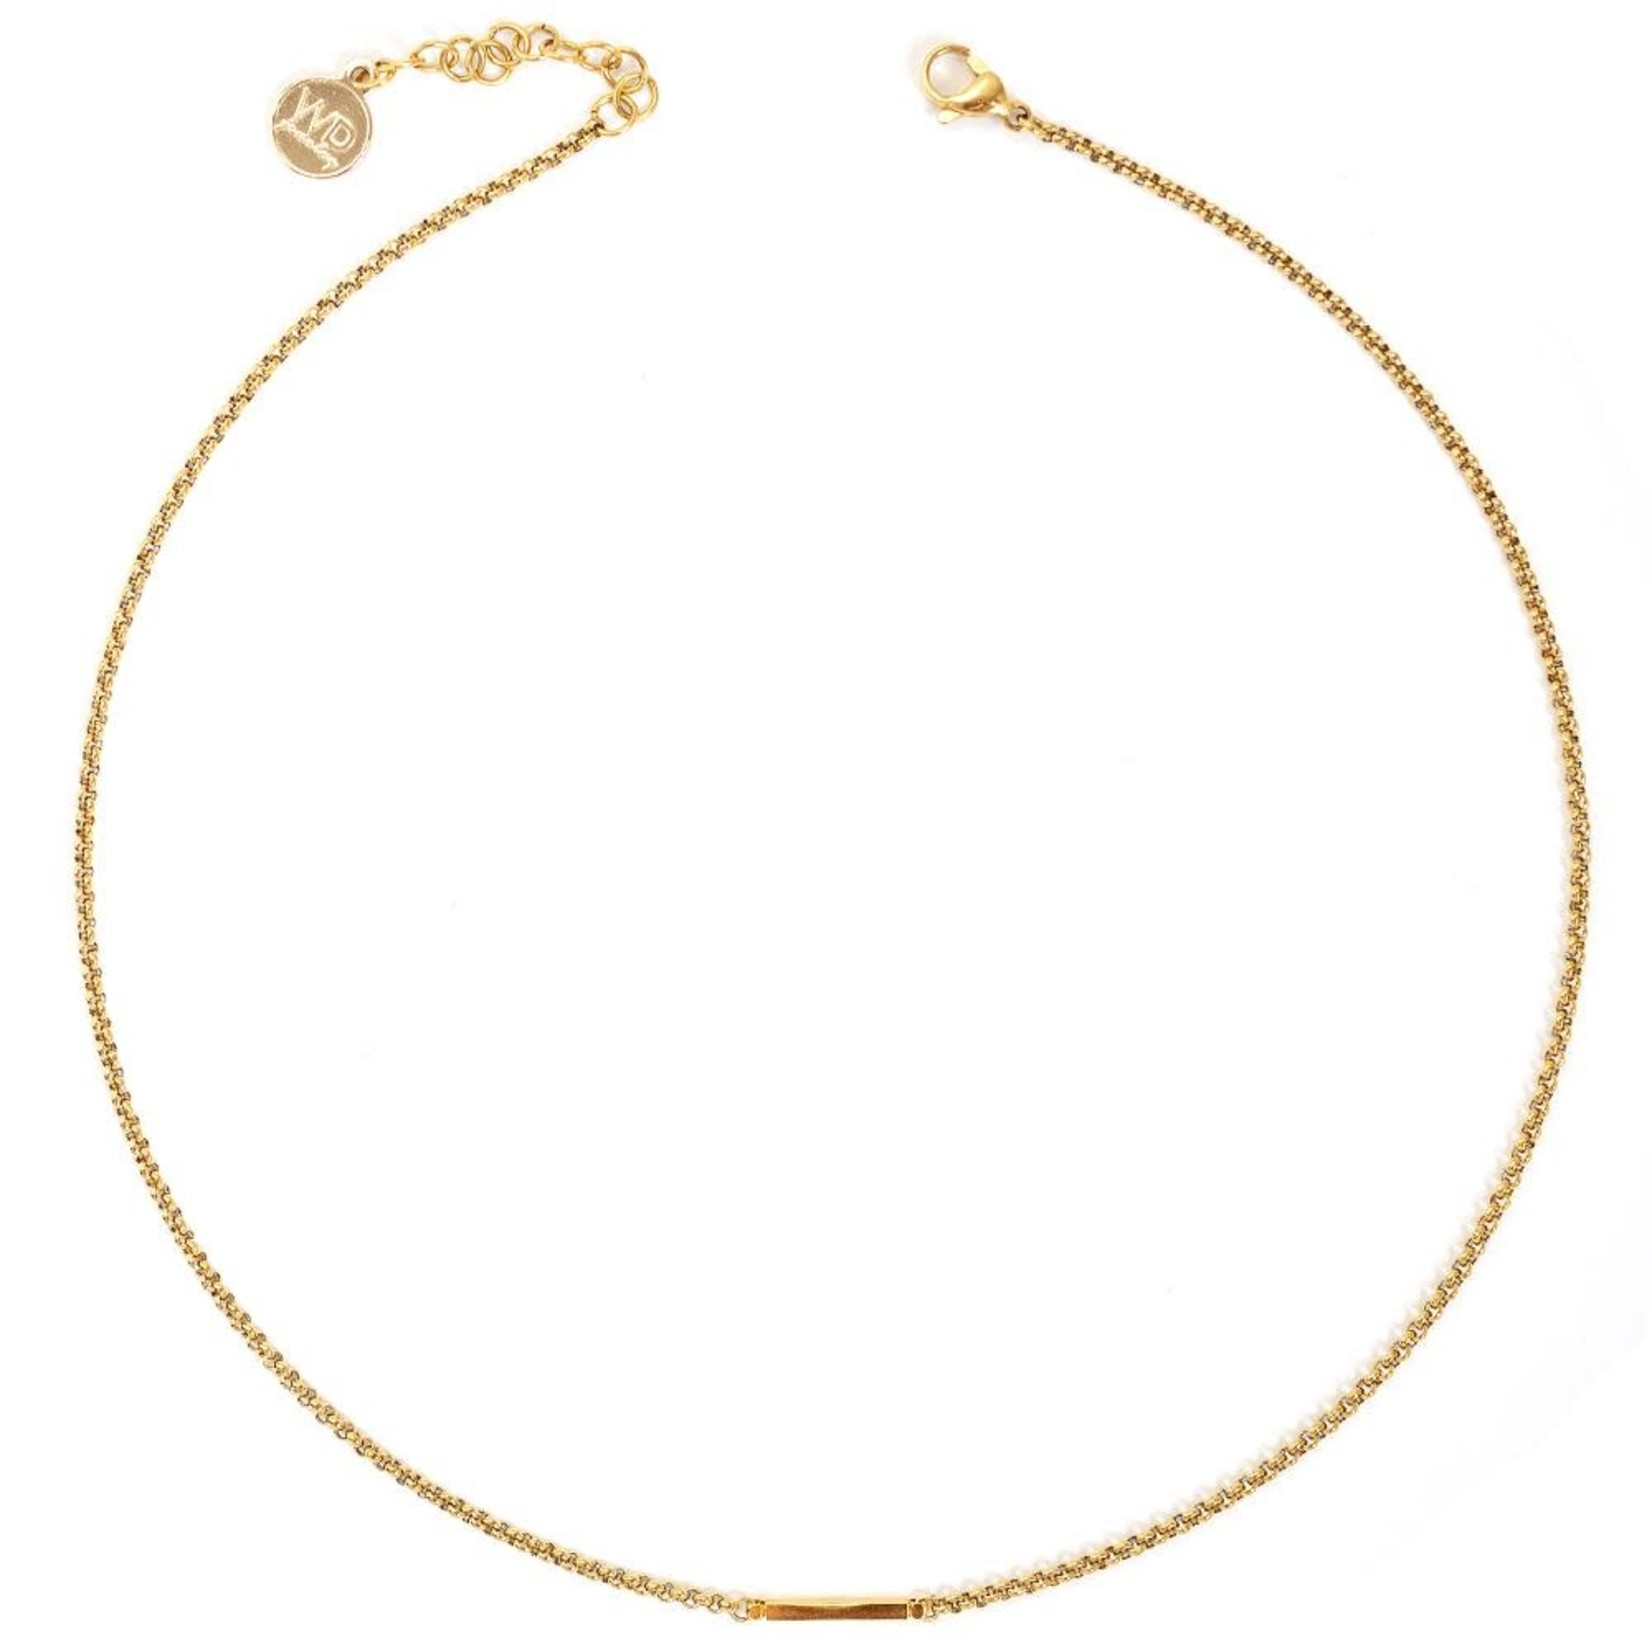 Welldunn jewelry Welldunn collier AXELLE or